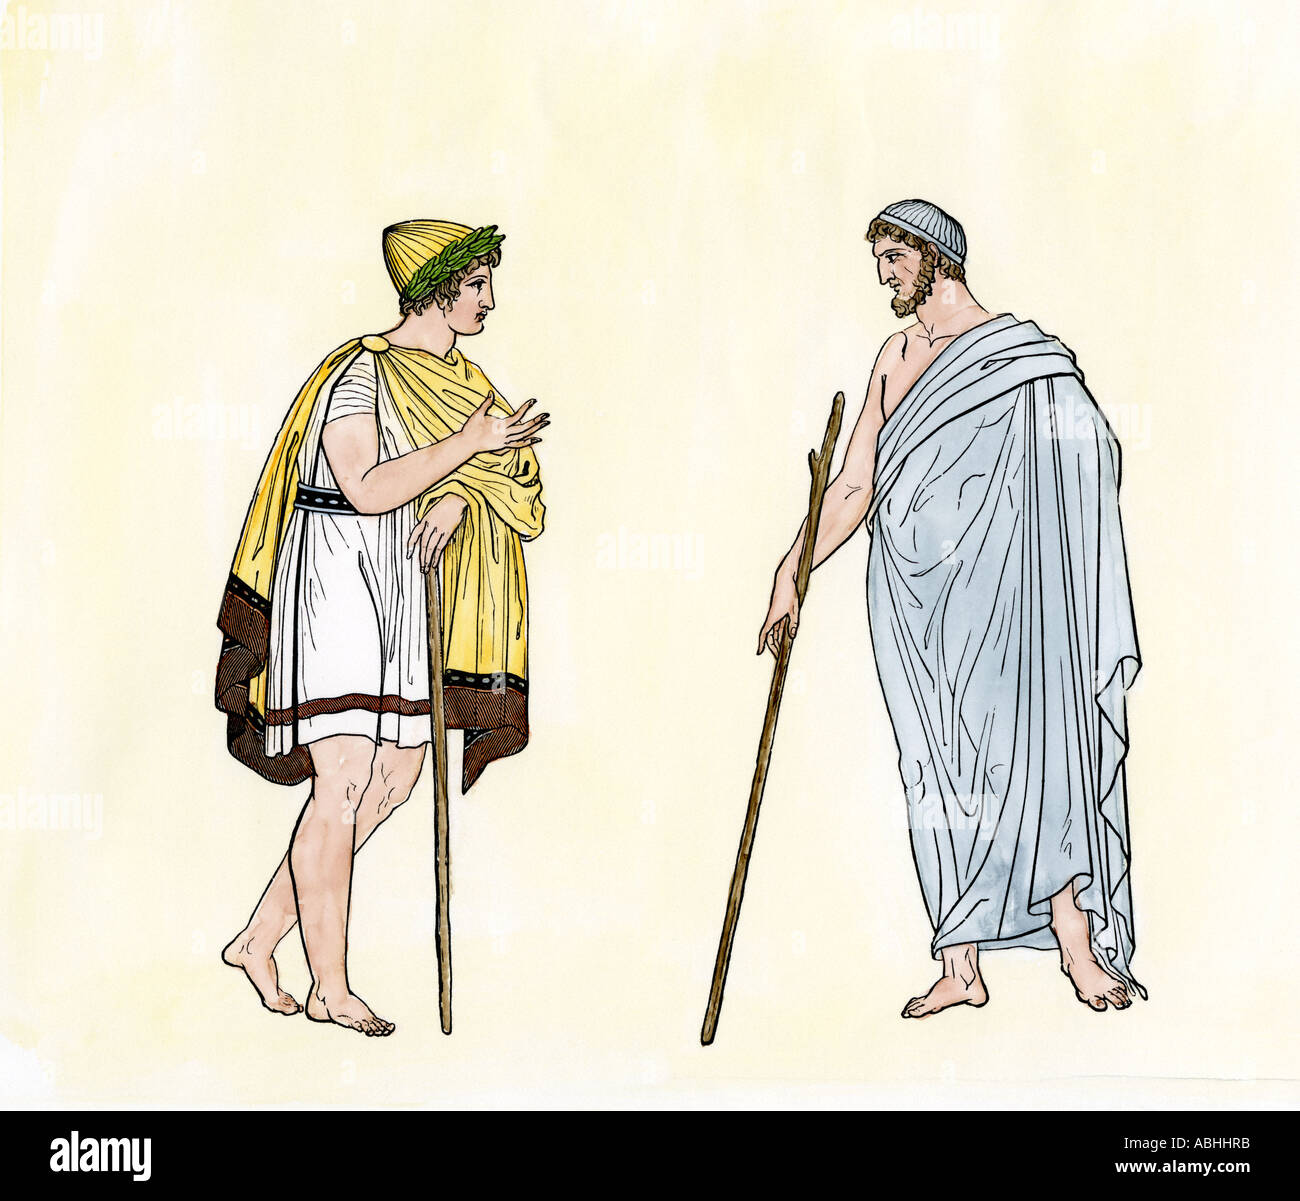 Athenians conversing a scene in ancient Greece 400s BC. Hand-colored woodcut - Stock Image